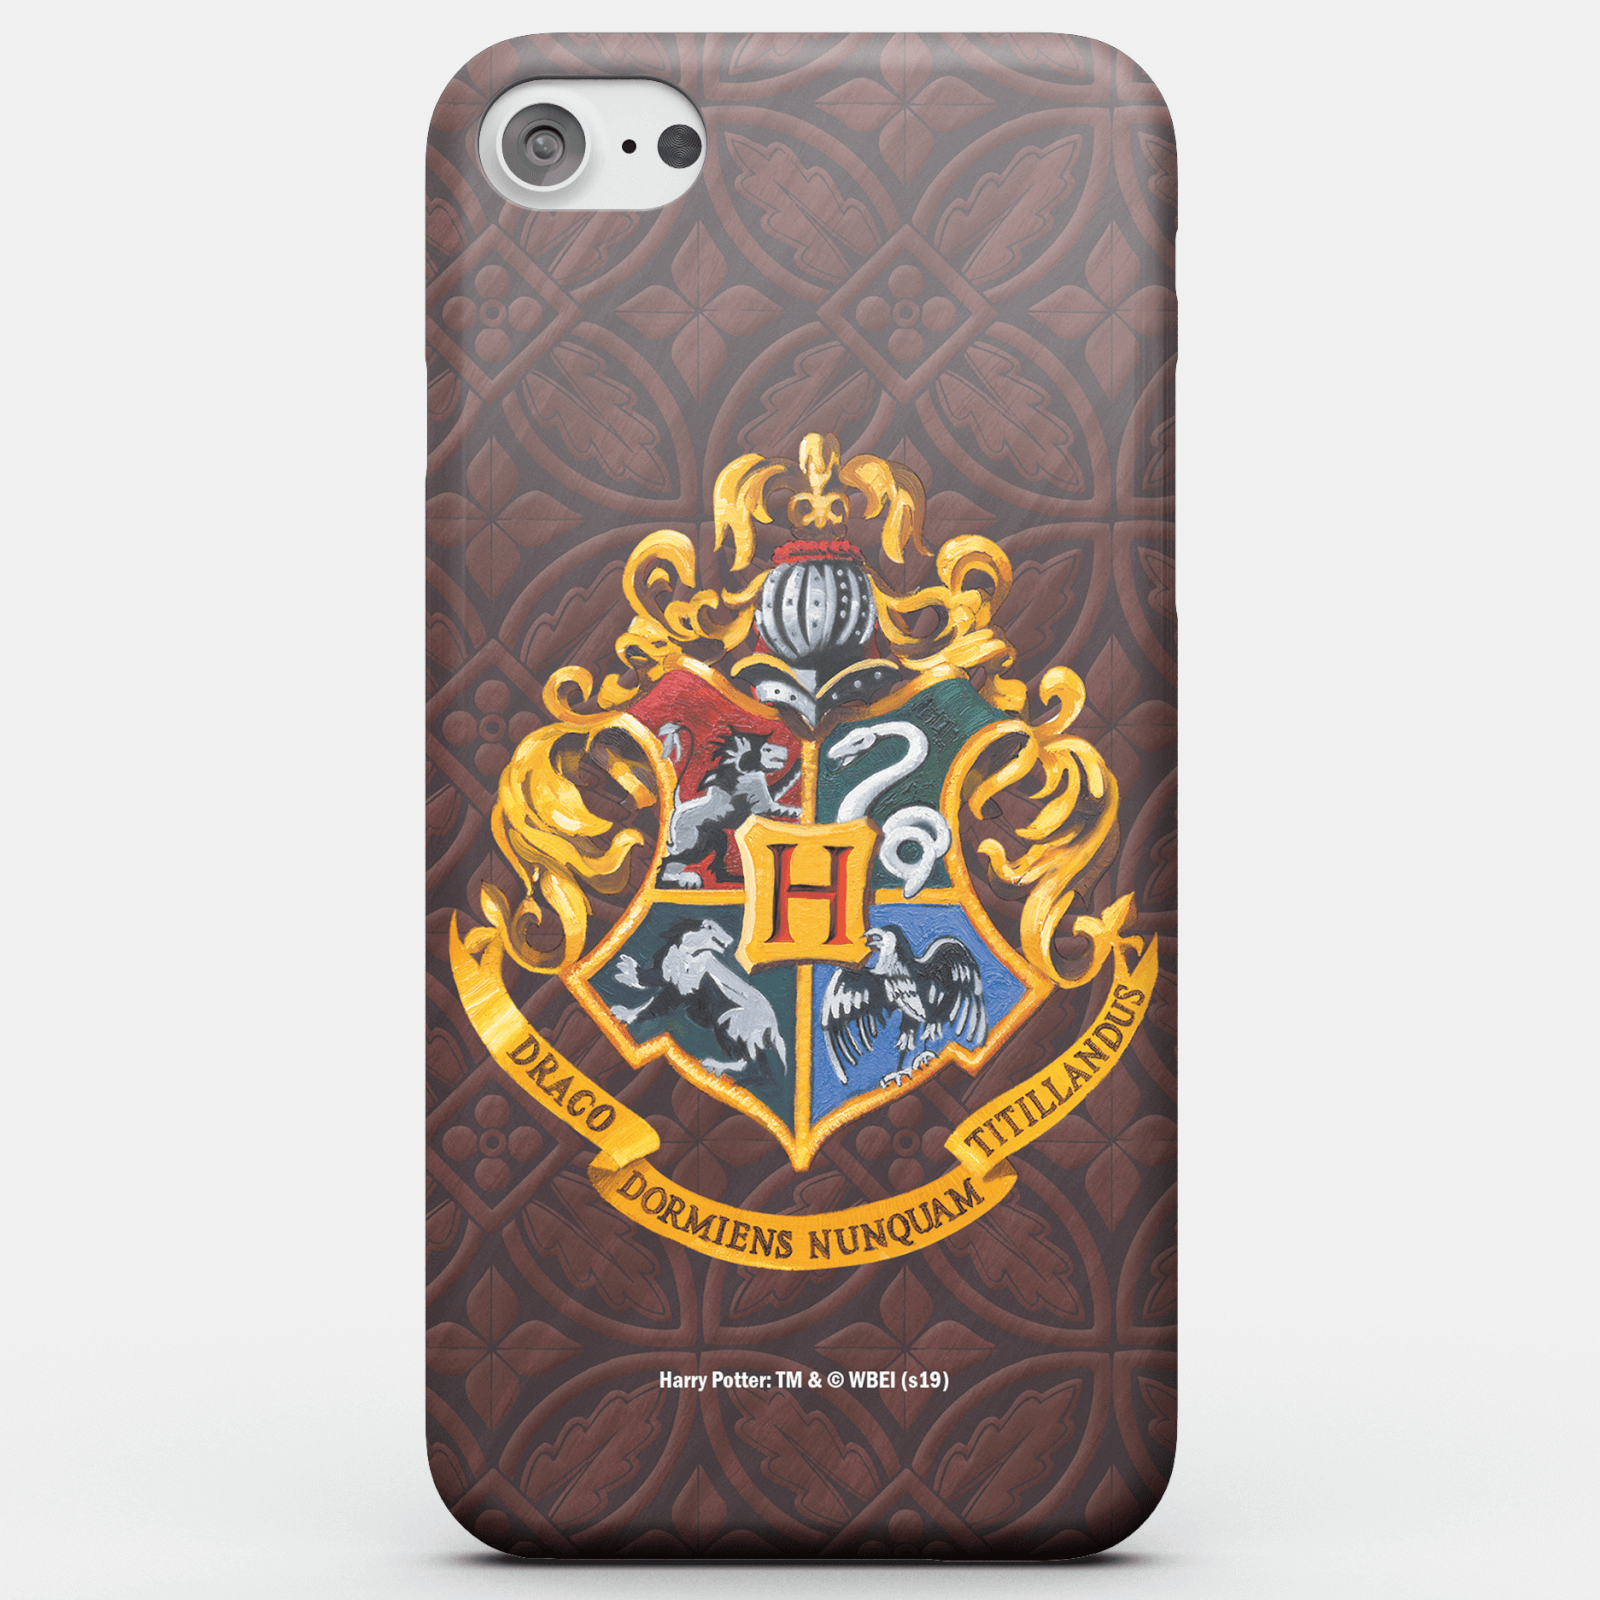 Harry Potter Phonecases Hogwarts Crest Phone Case for iPhone and Android - Samsung S7 - Carcasa rígida - Mate de Harry Potter